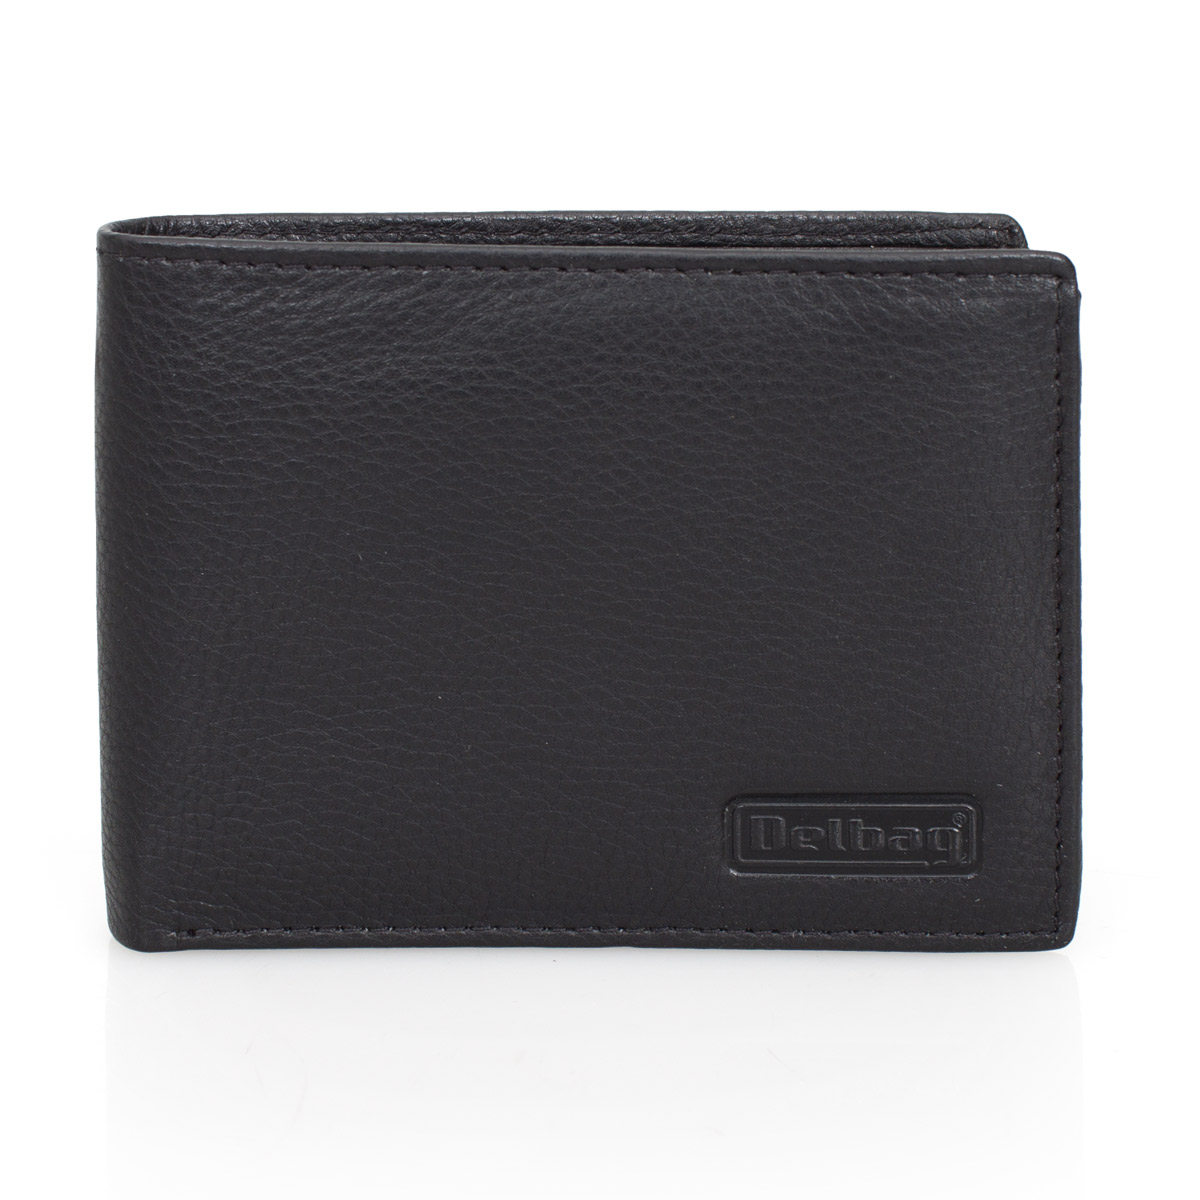 Delbag Card Holder Wallet BLACK  – image 1